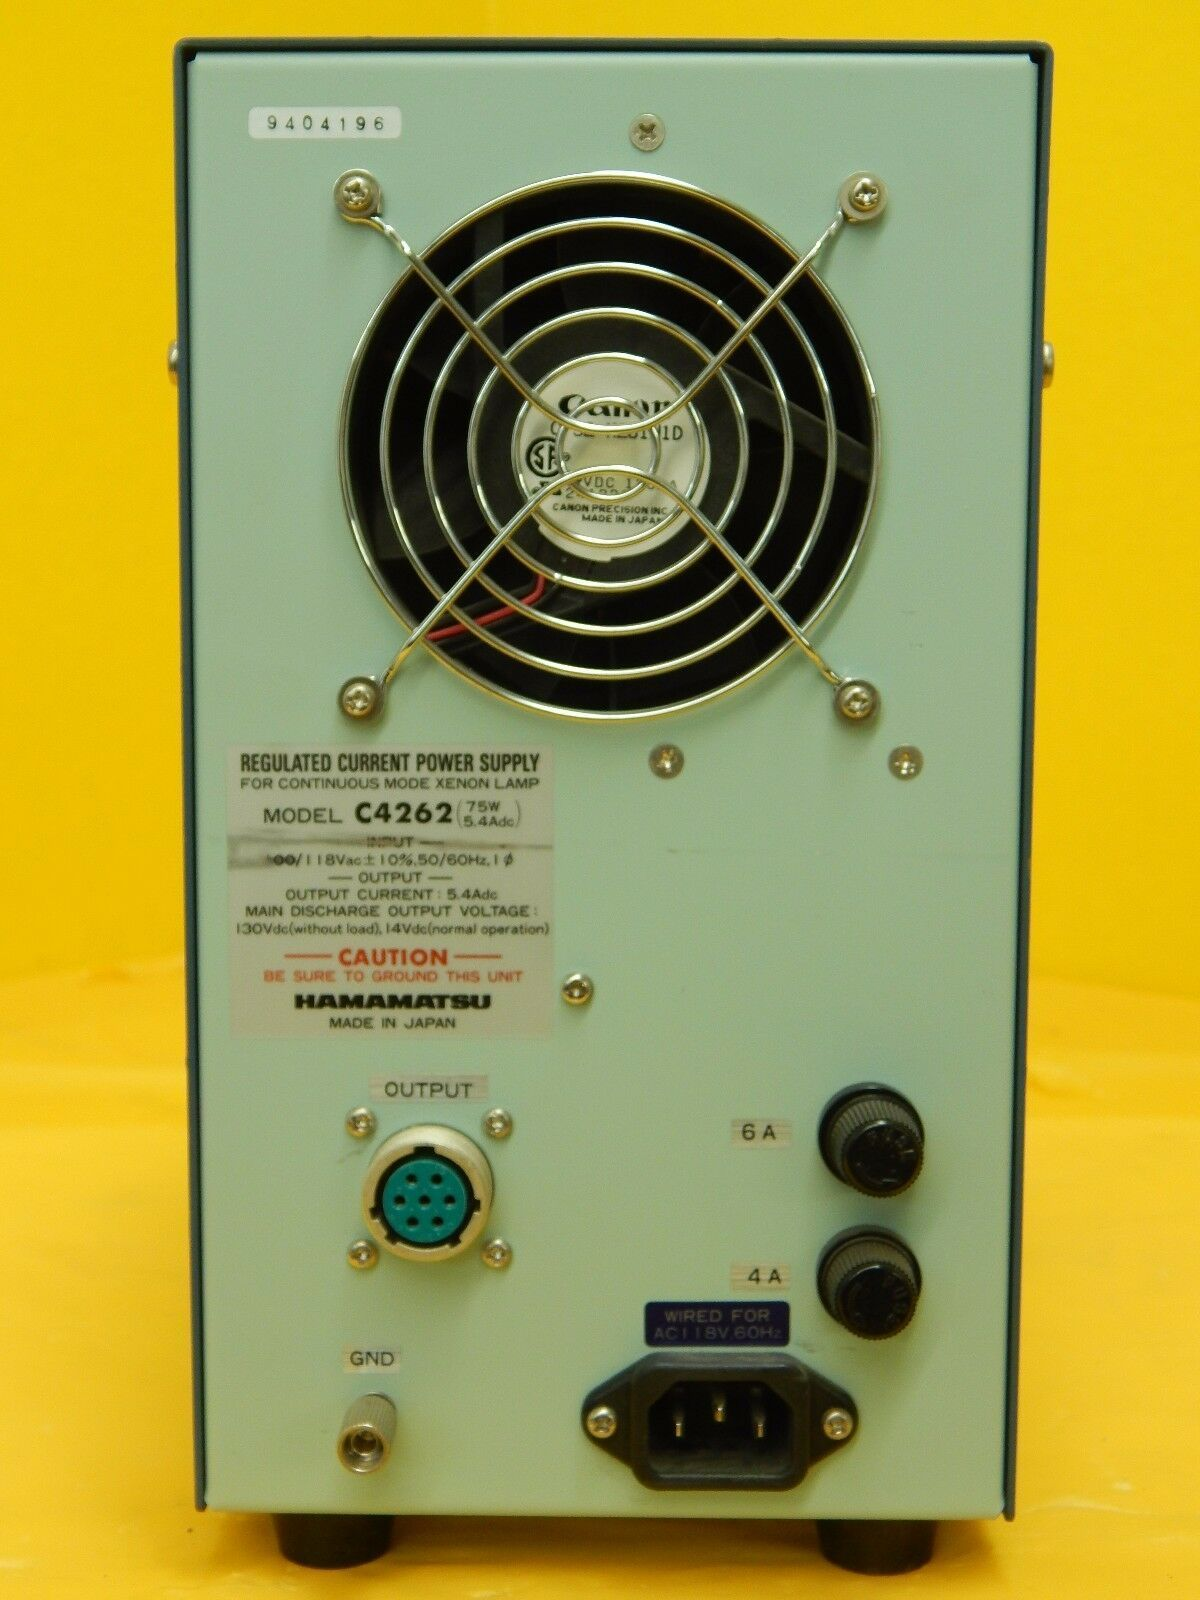 Hamamatsu C4262 Xenon Lamp Regulated Current Power Supply Used Working